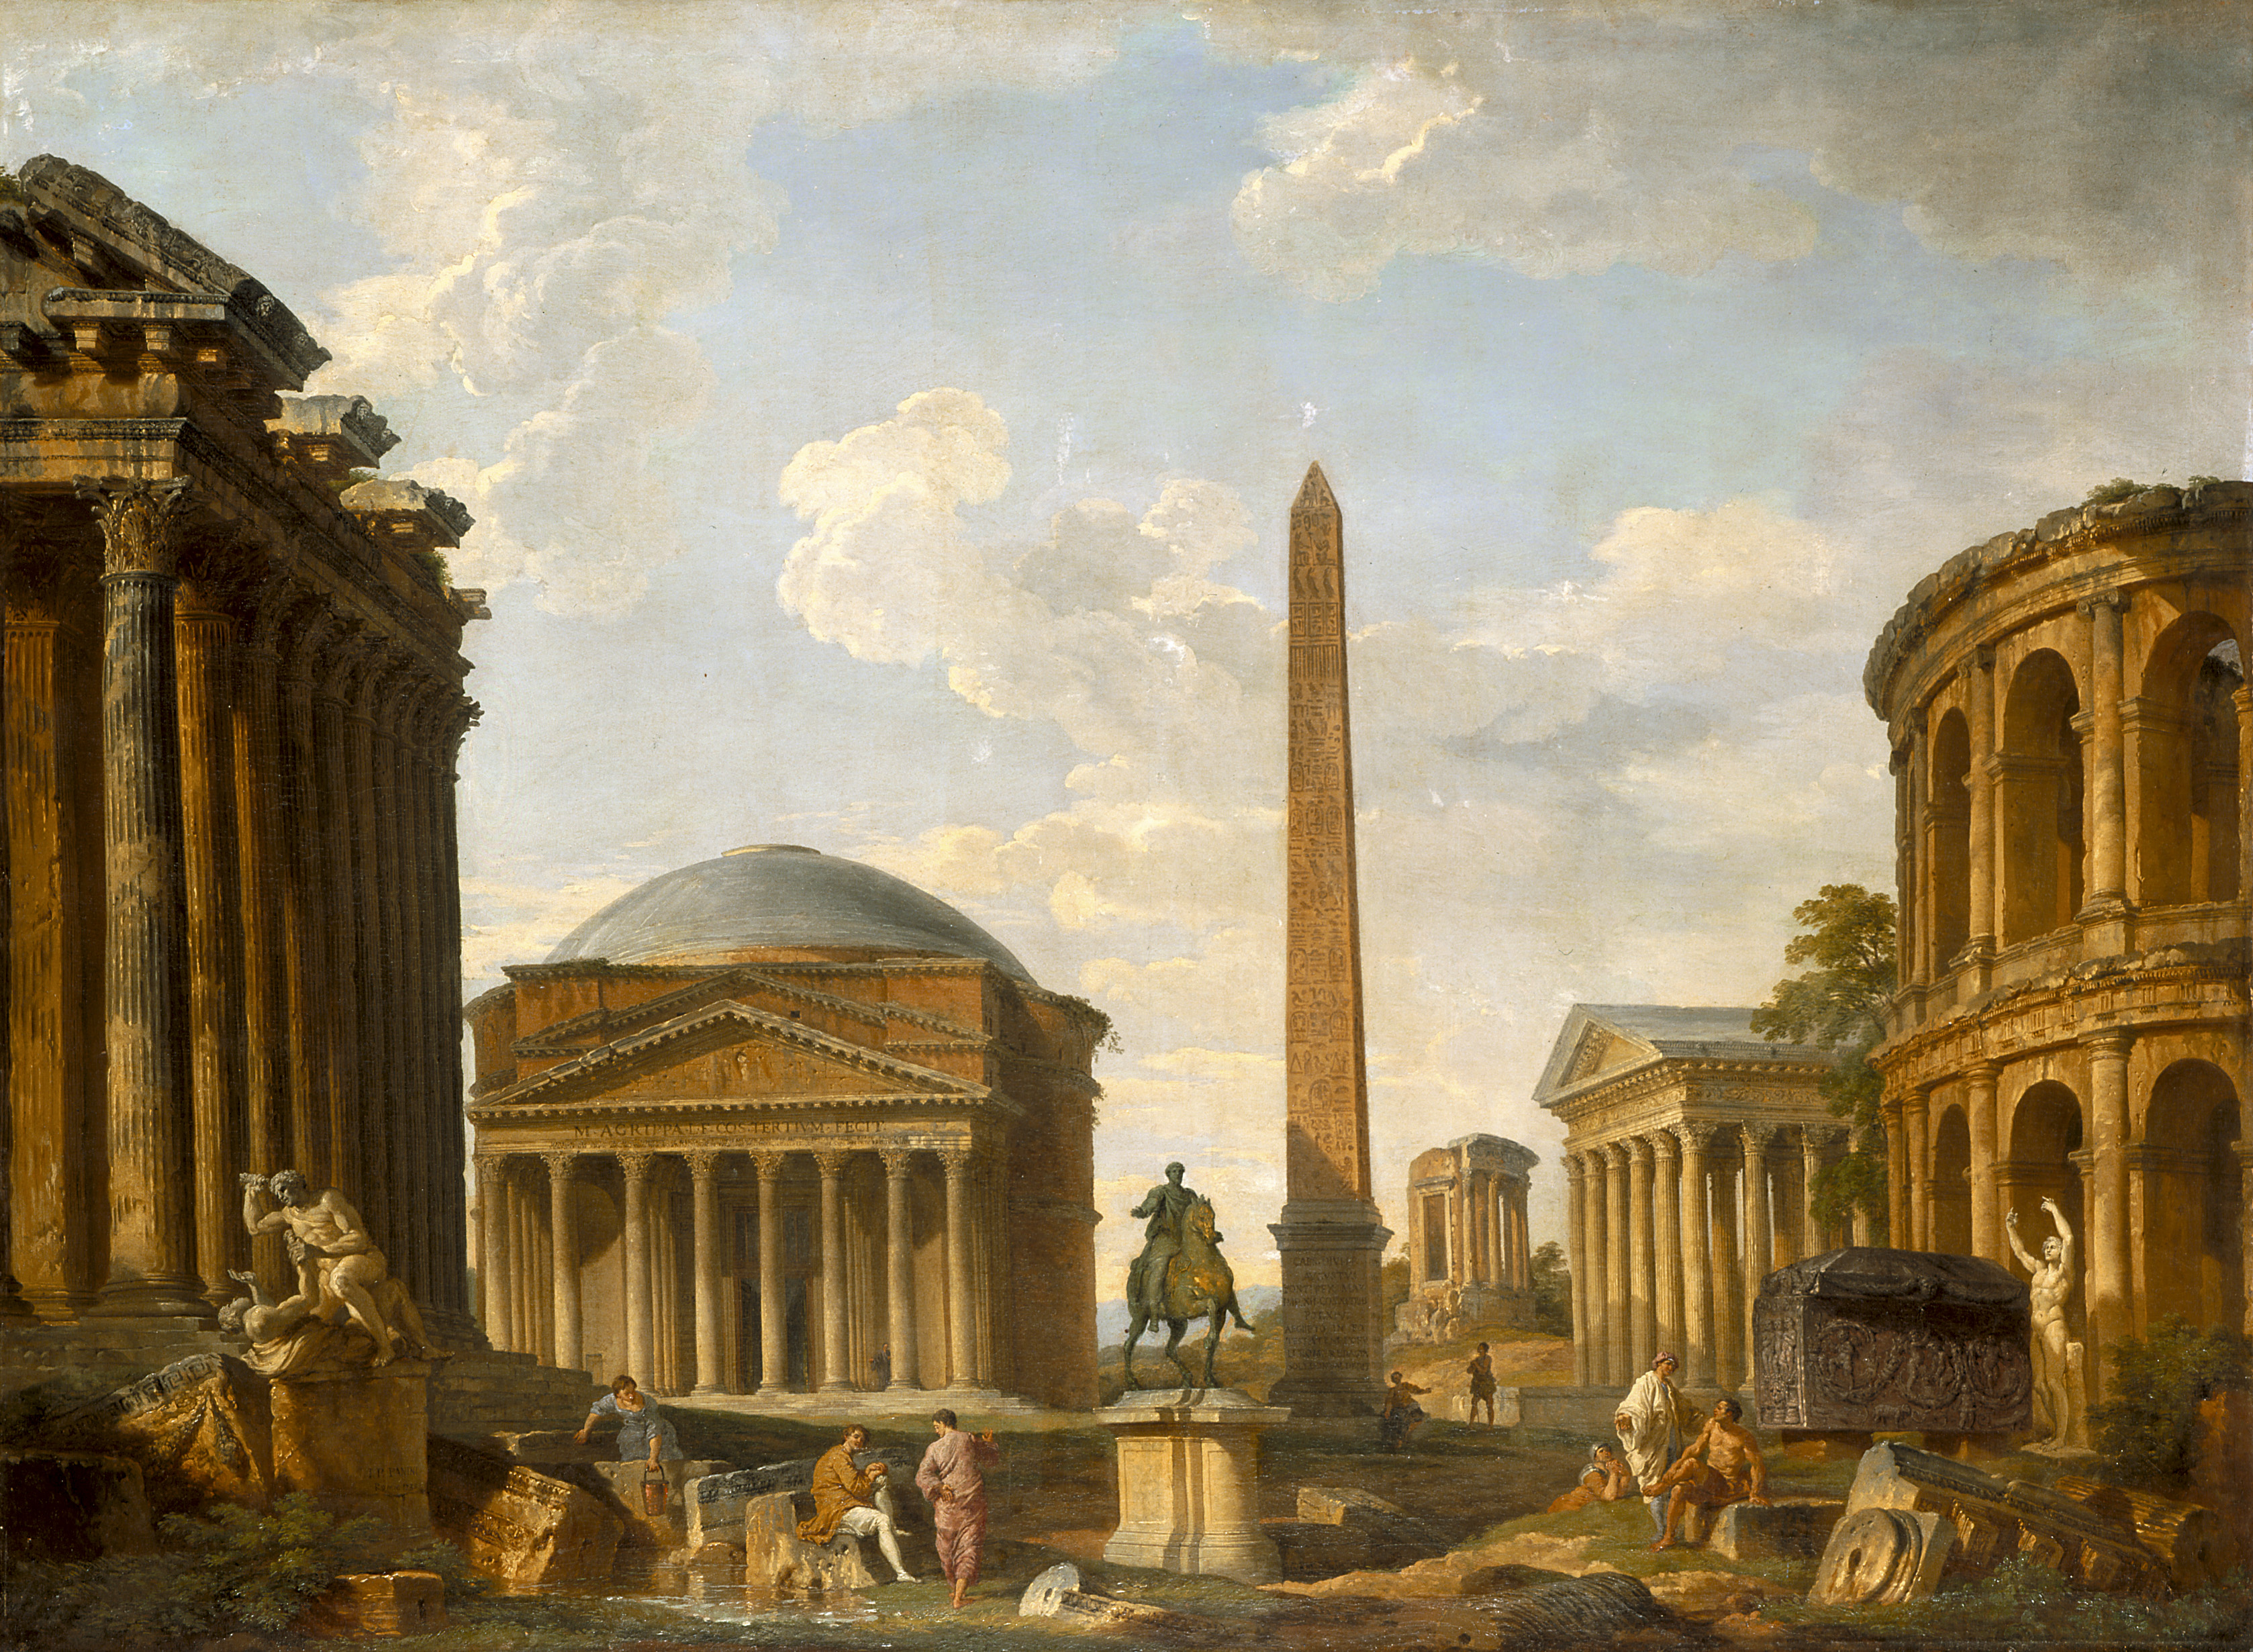 Roman Capriccio: The Pantheon and Other Monuments - Wikipedia